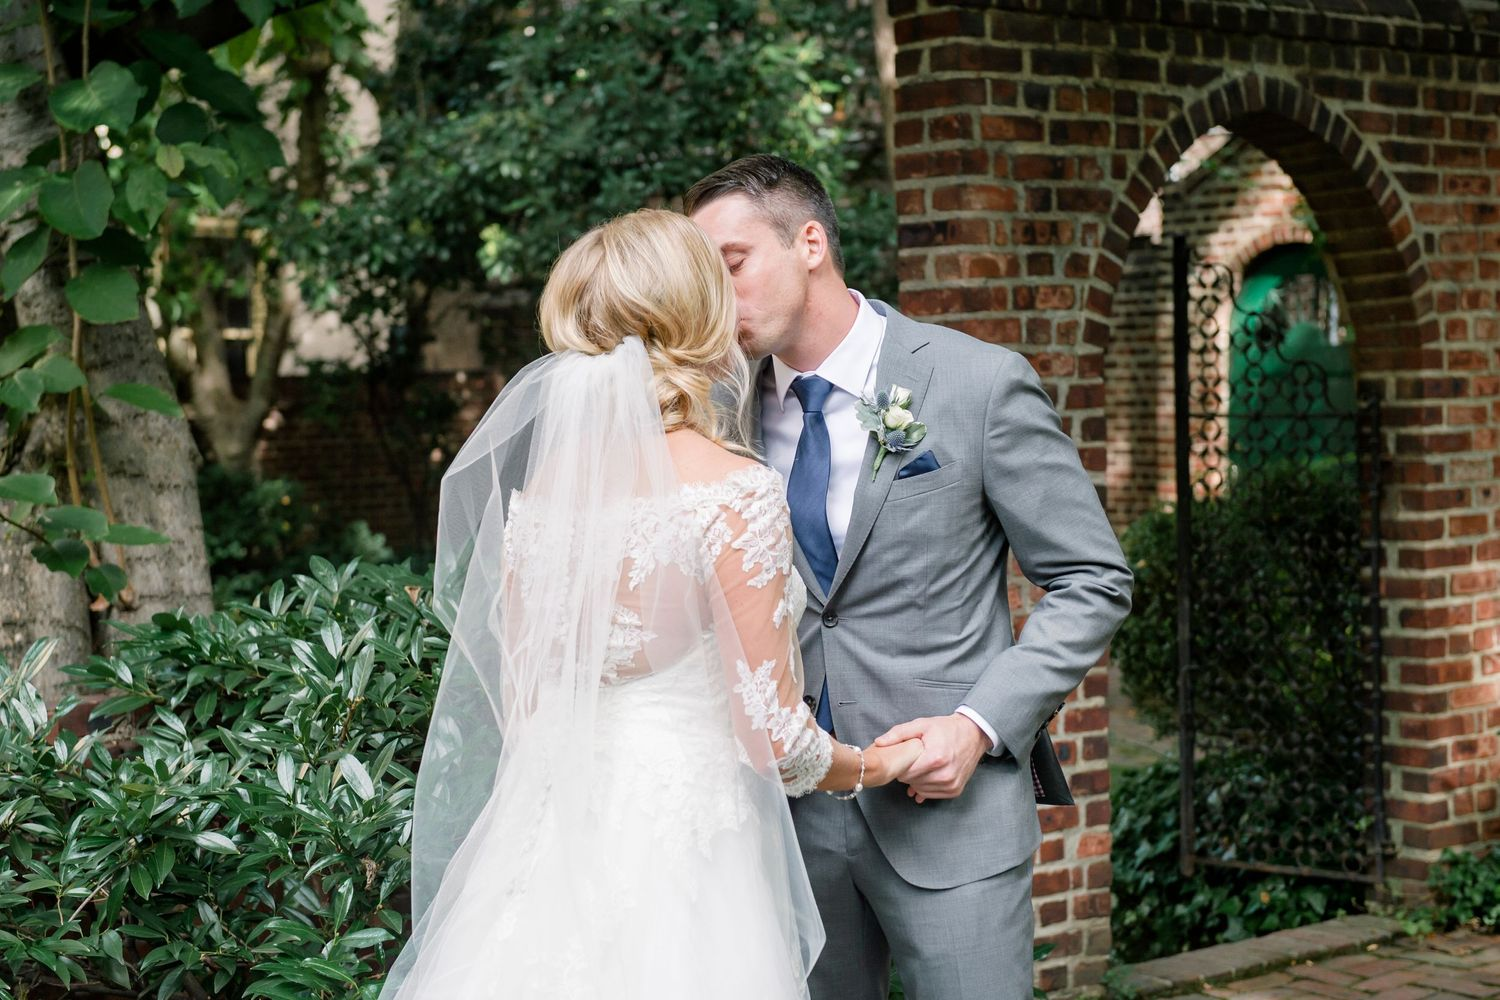 broom kisses bride at Colonial Dames in Philadelphia